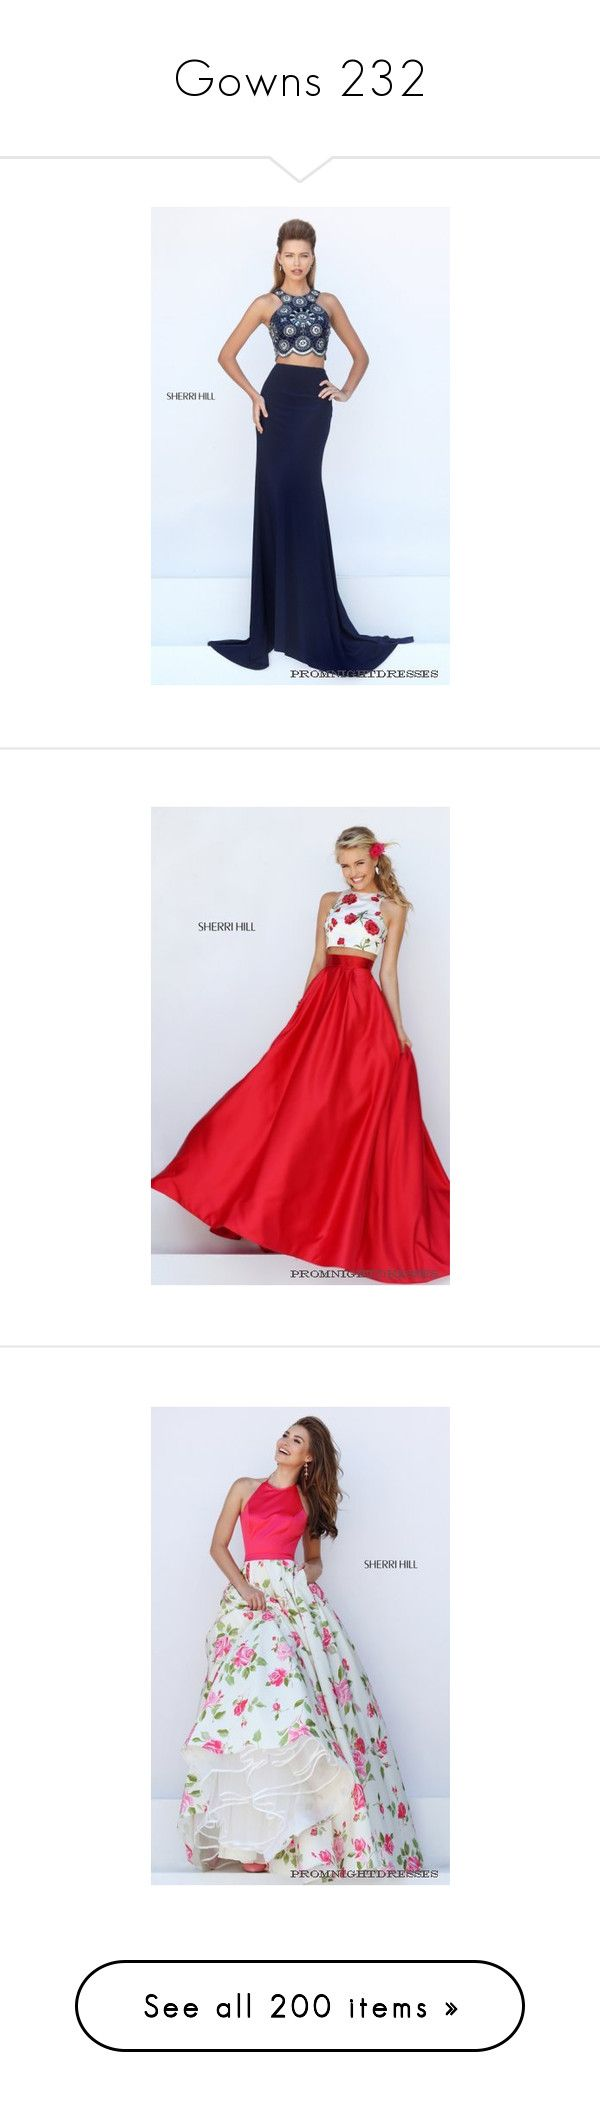 """""""Gowns 232"""" by singlemom ❤ liked on Polyvore featuring dresses, beaded prom dresses, navy blue dress, navy blue prom dresses, sherri hill dresses, navy blue cocktail dress, 2 piece prom dresses, sherri hill two piece, sherri hill and two piece prom dresses"""